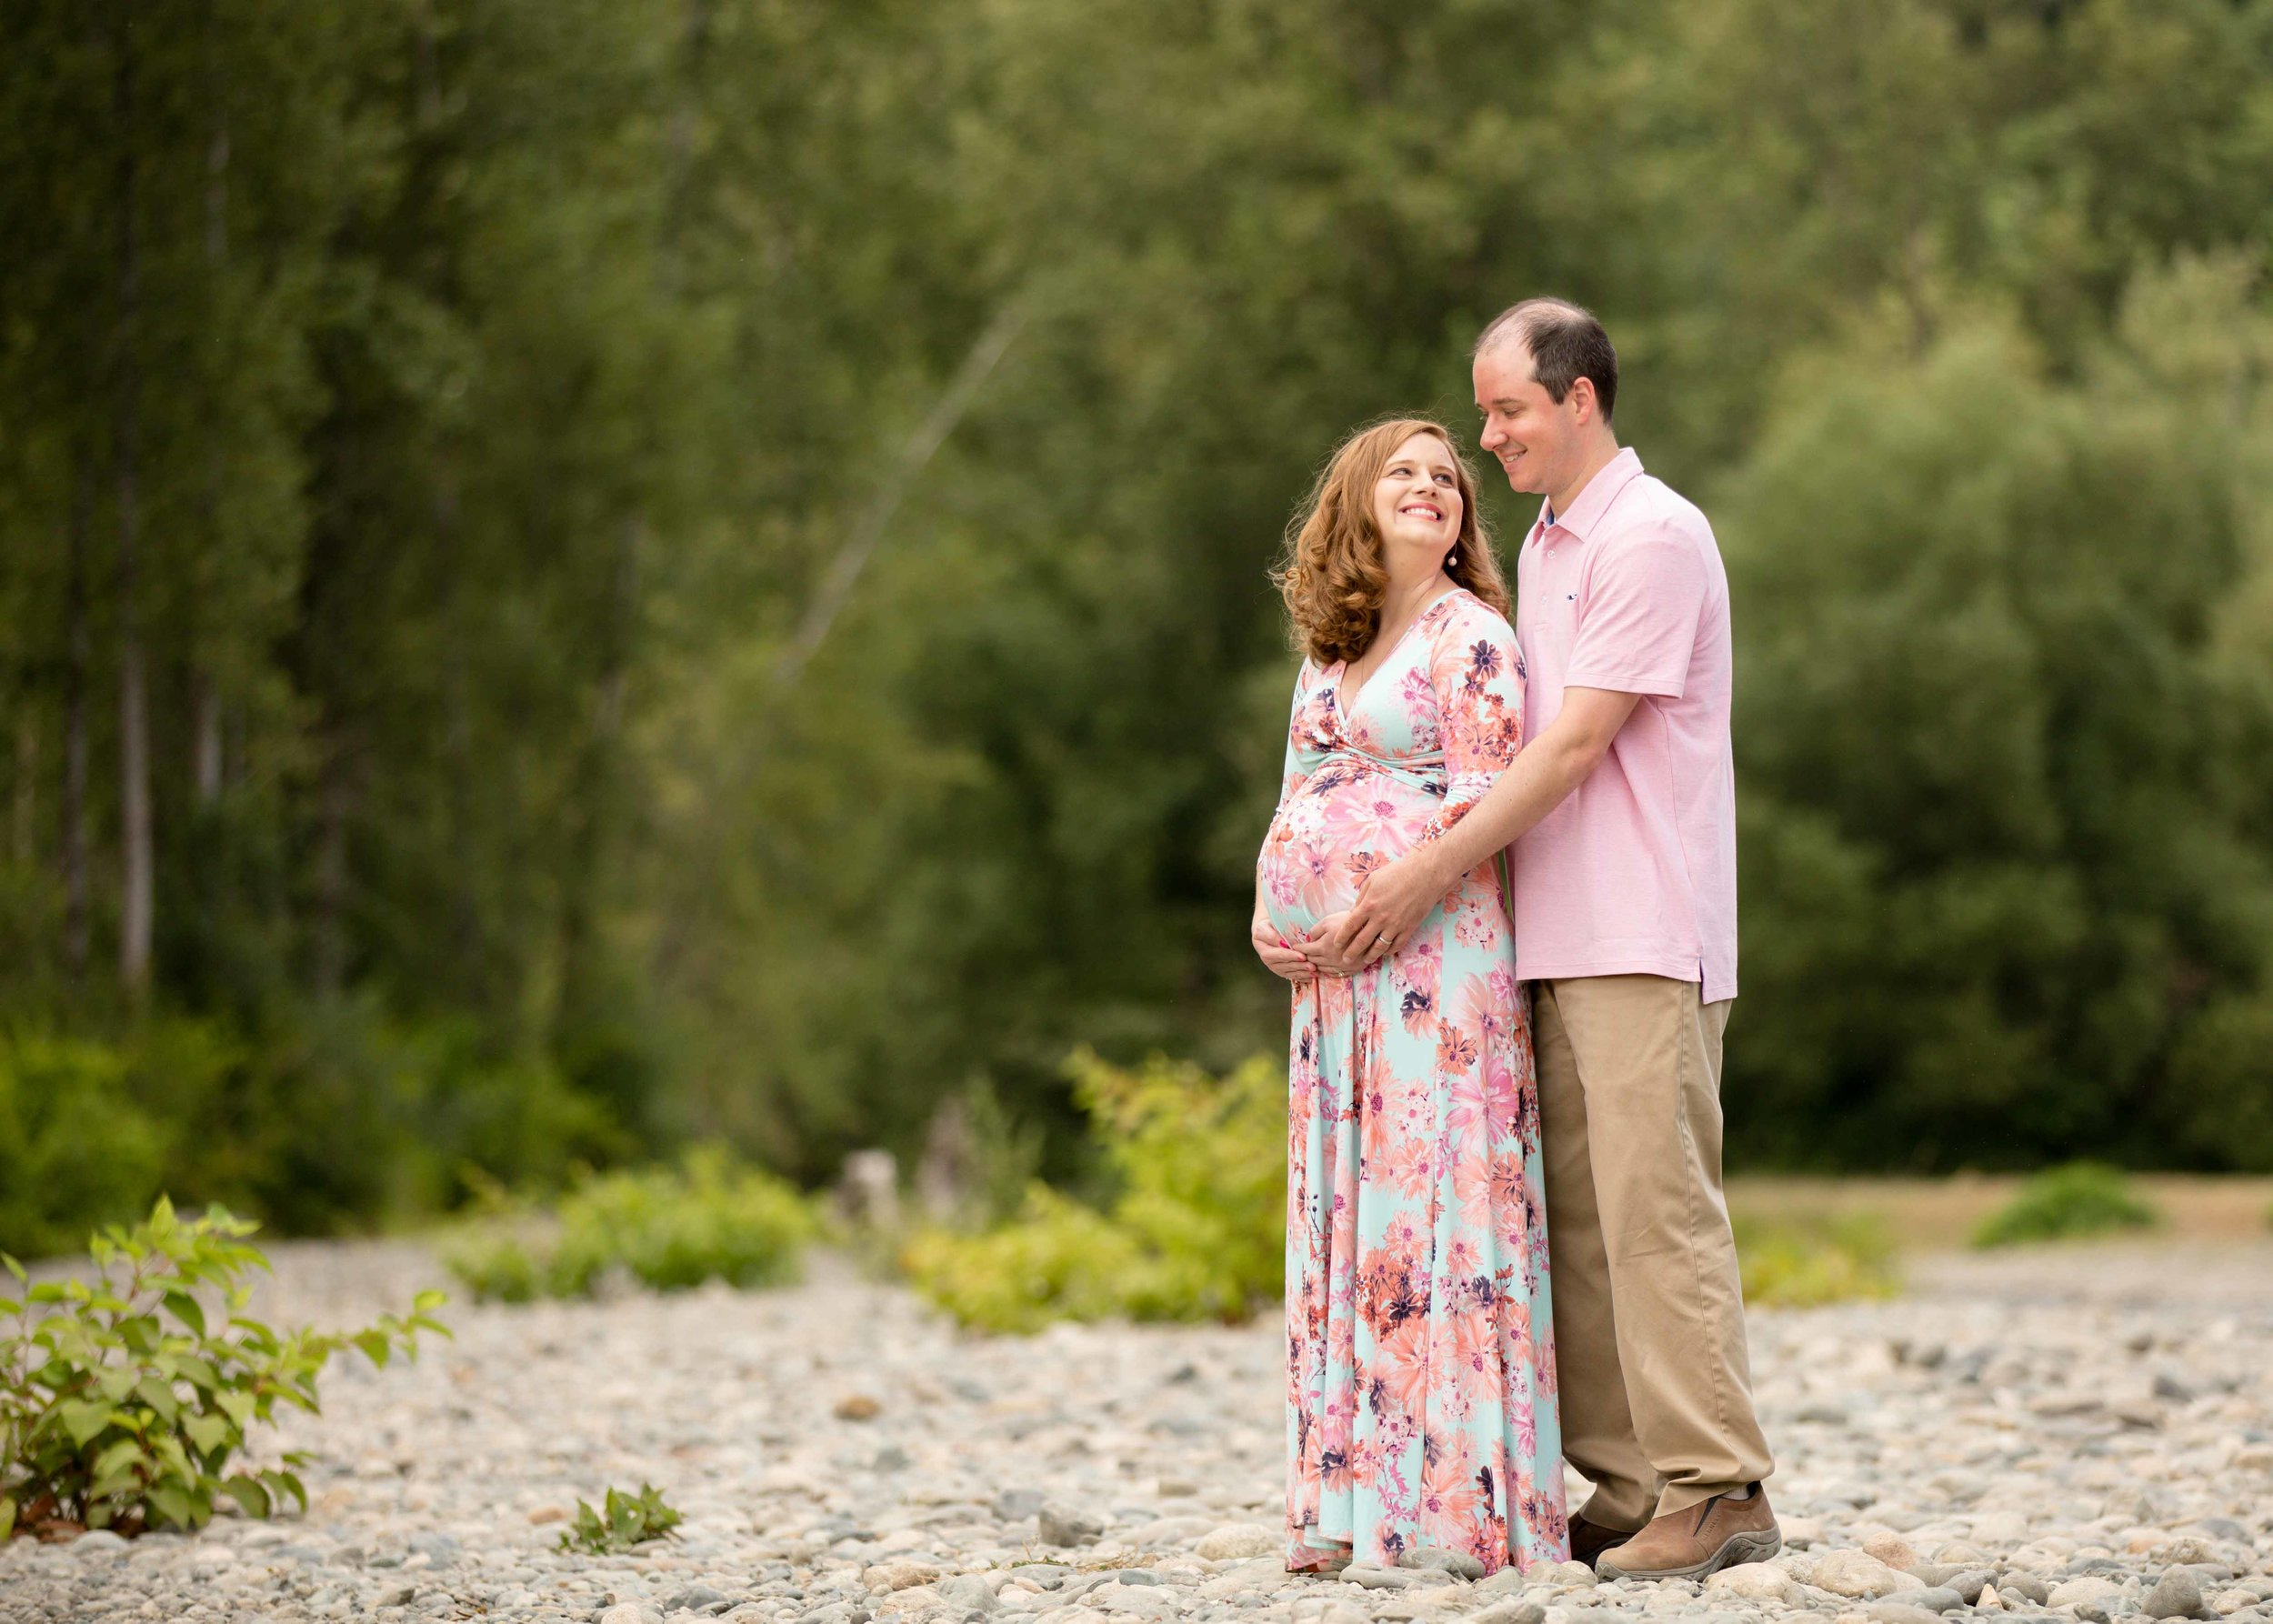 Snohomish County Maternity Photographer | Lake Stevens, WA